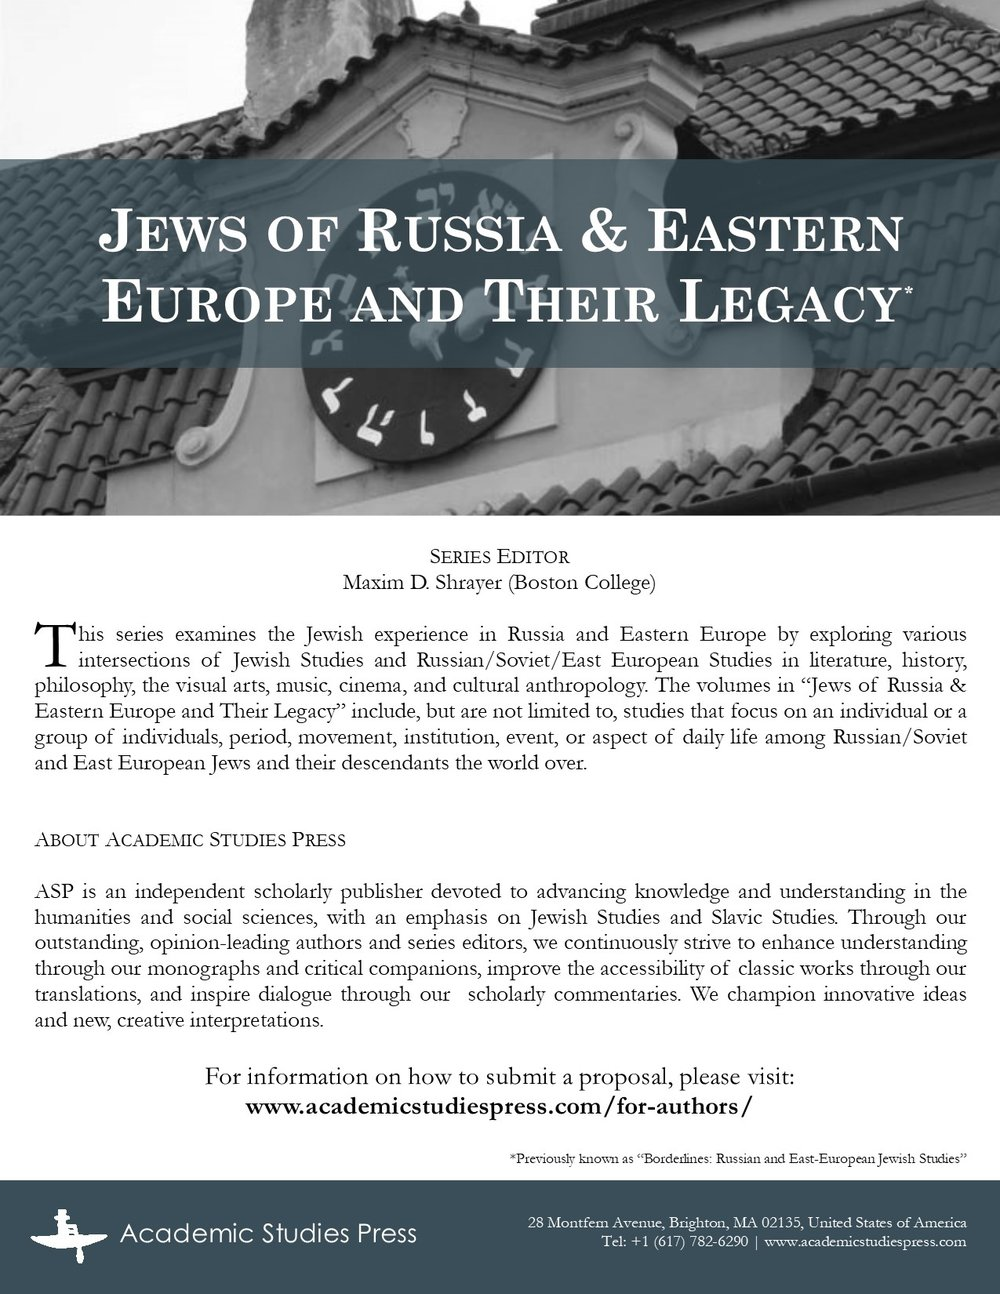 Jews of Russia & Eastern Europe and Their Legacy Flyer.jpg